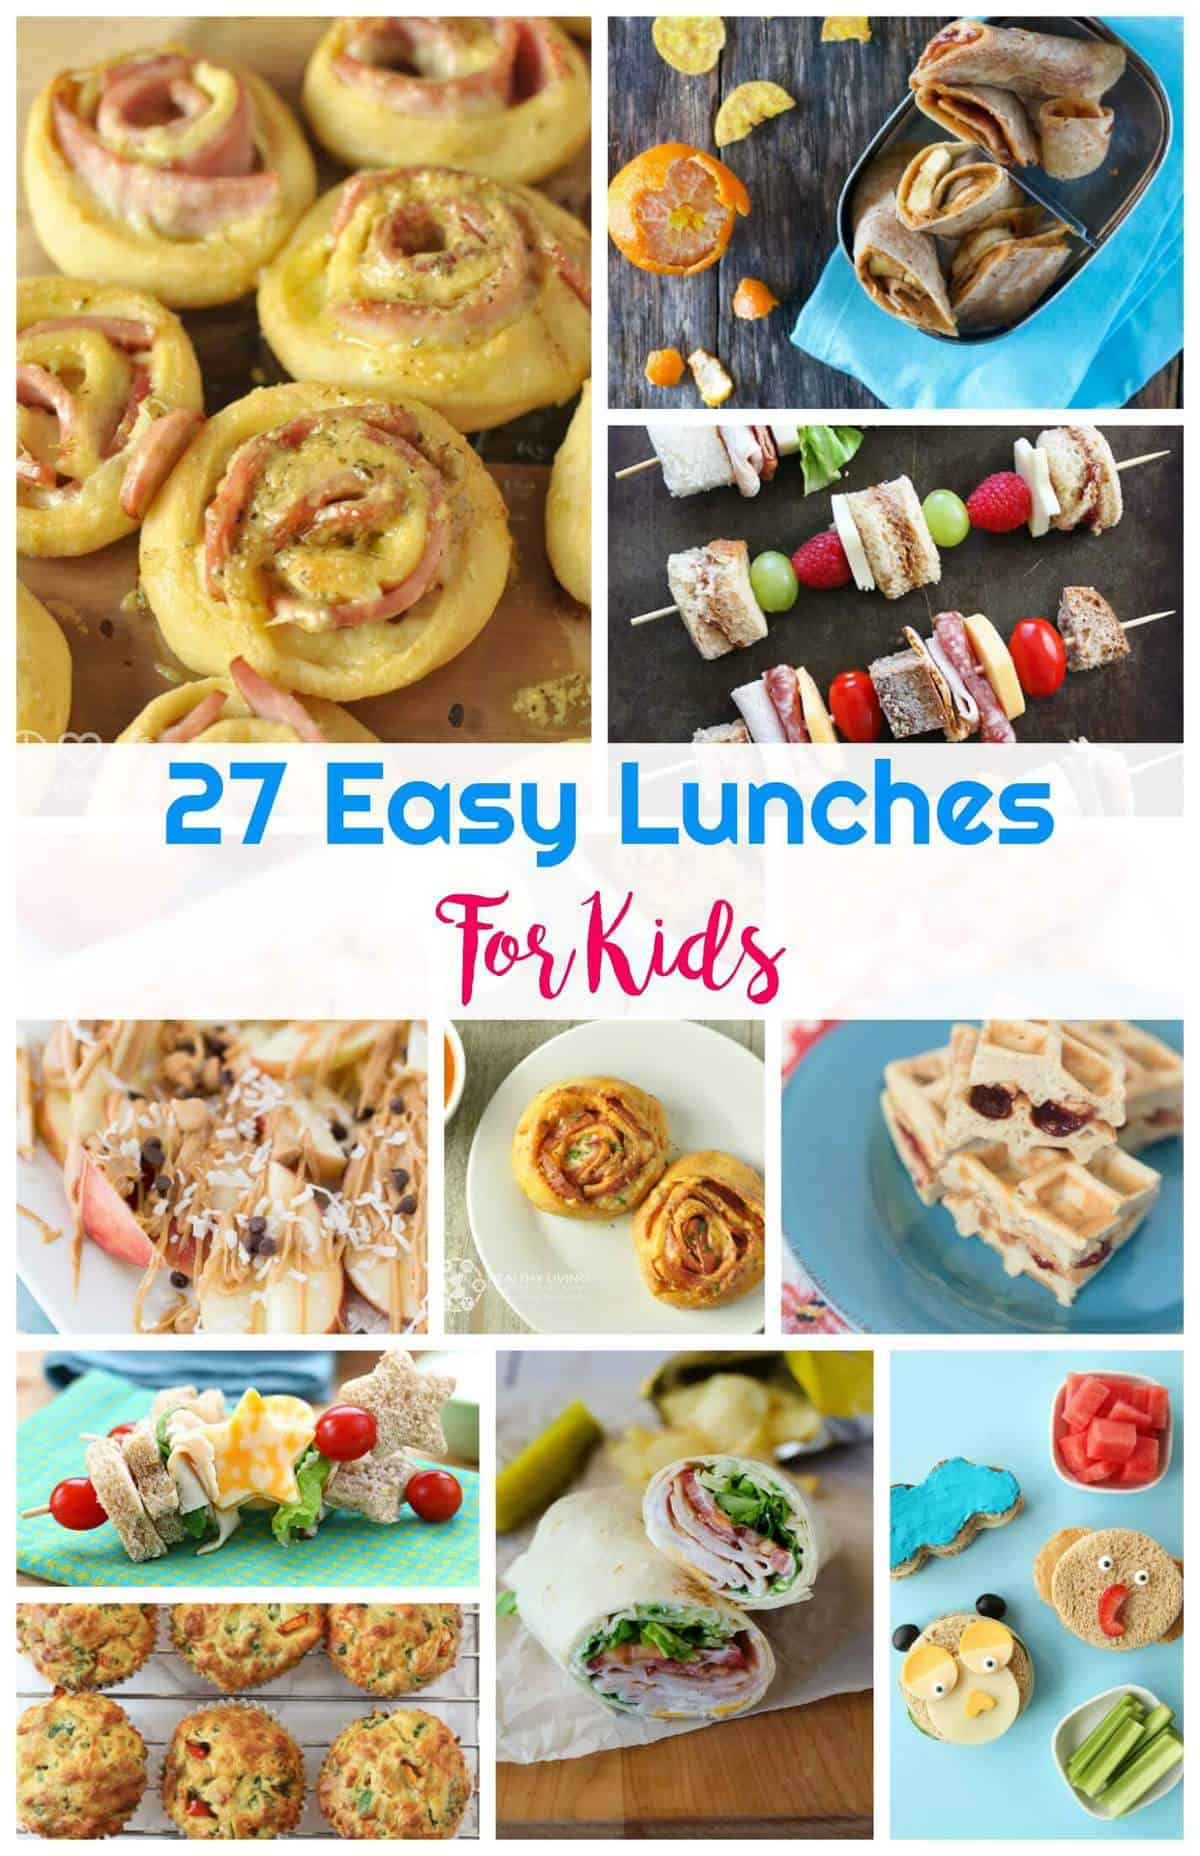 27 Easy Lunches For Kids | Healthy Living in Body and Mind